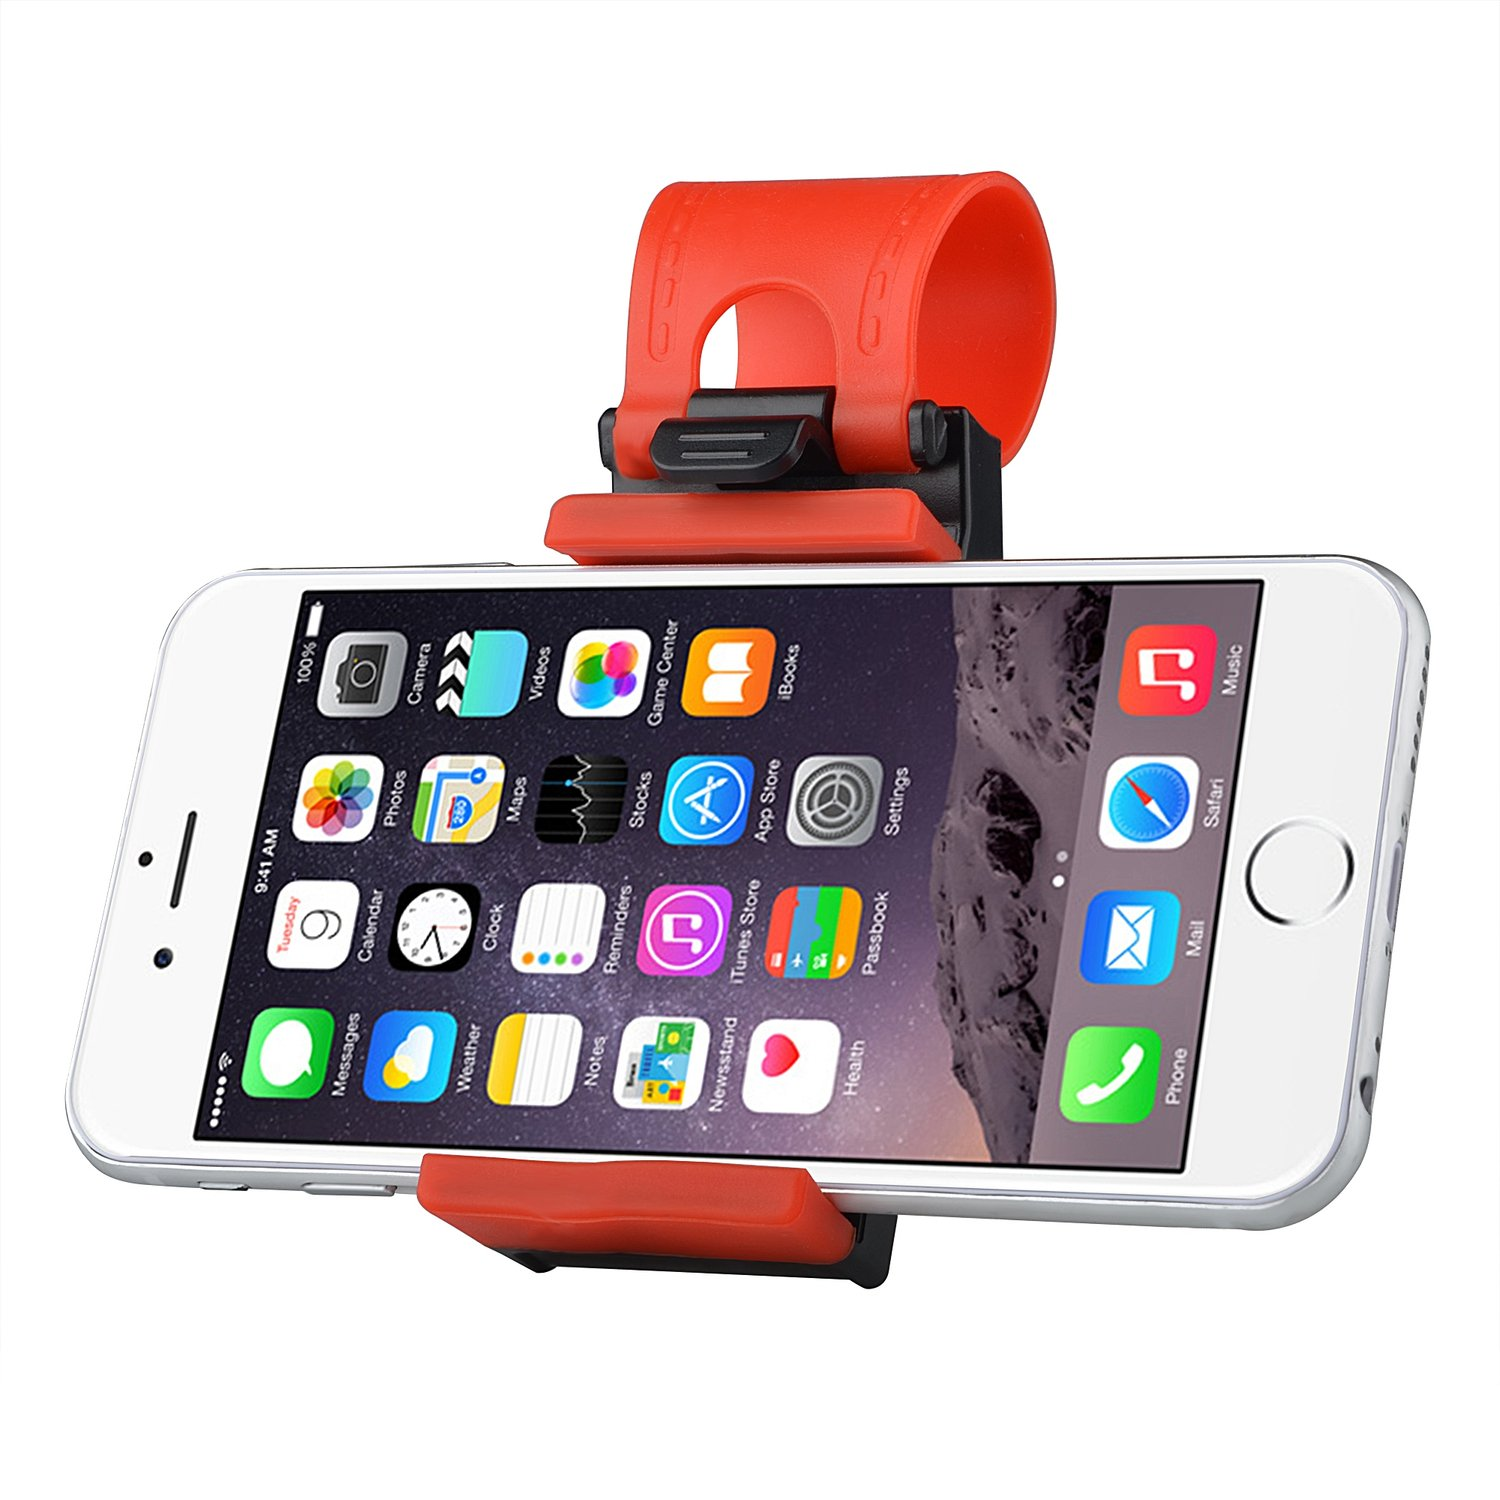 STEERING WHEEL PHONE HOLDER